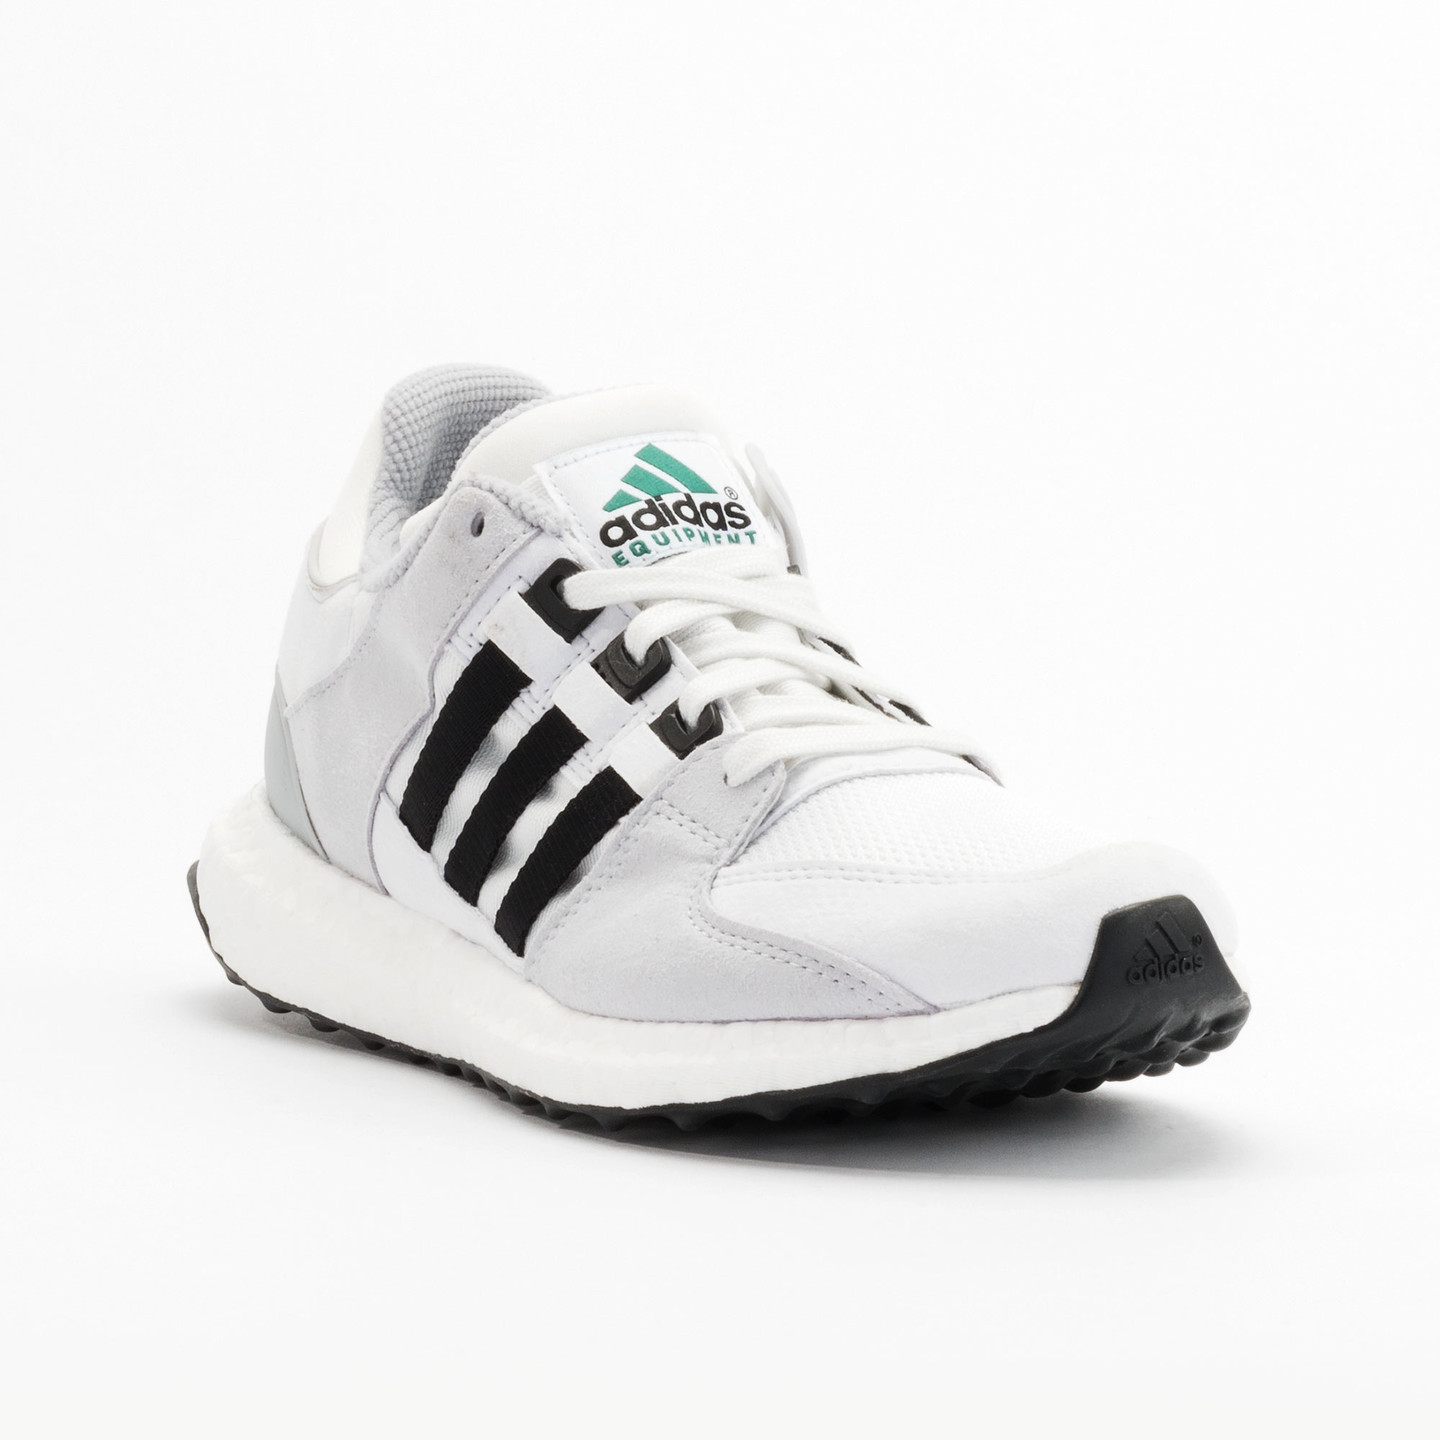 Adidas Equipment Support 93/16 Vintage White / Core Black / Sub Green S79112-42